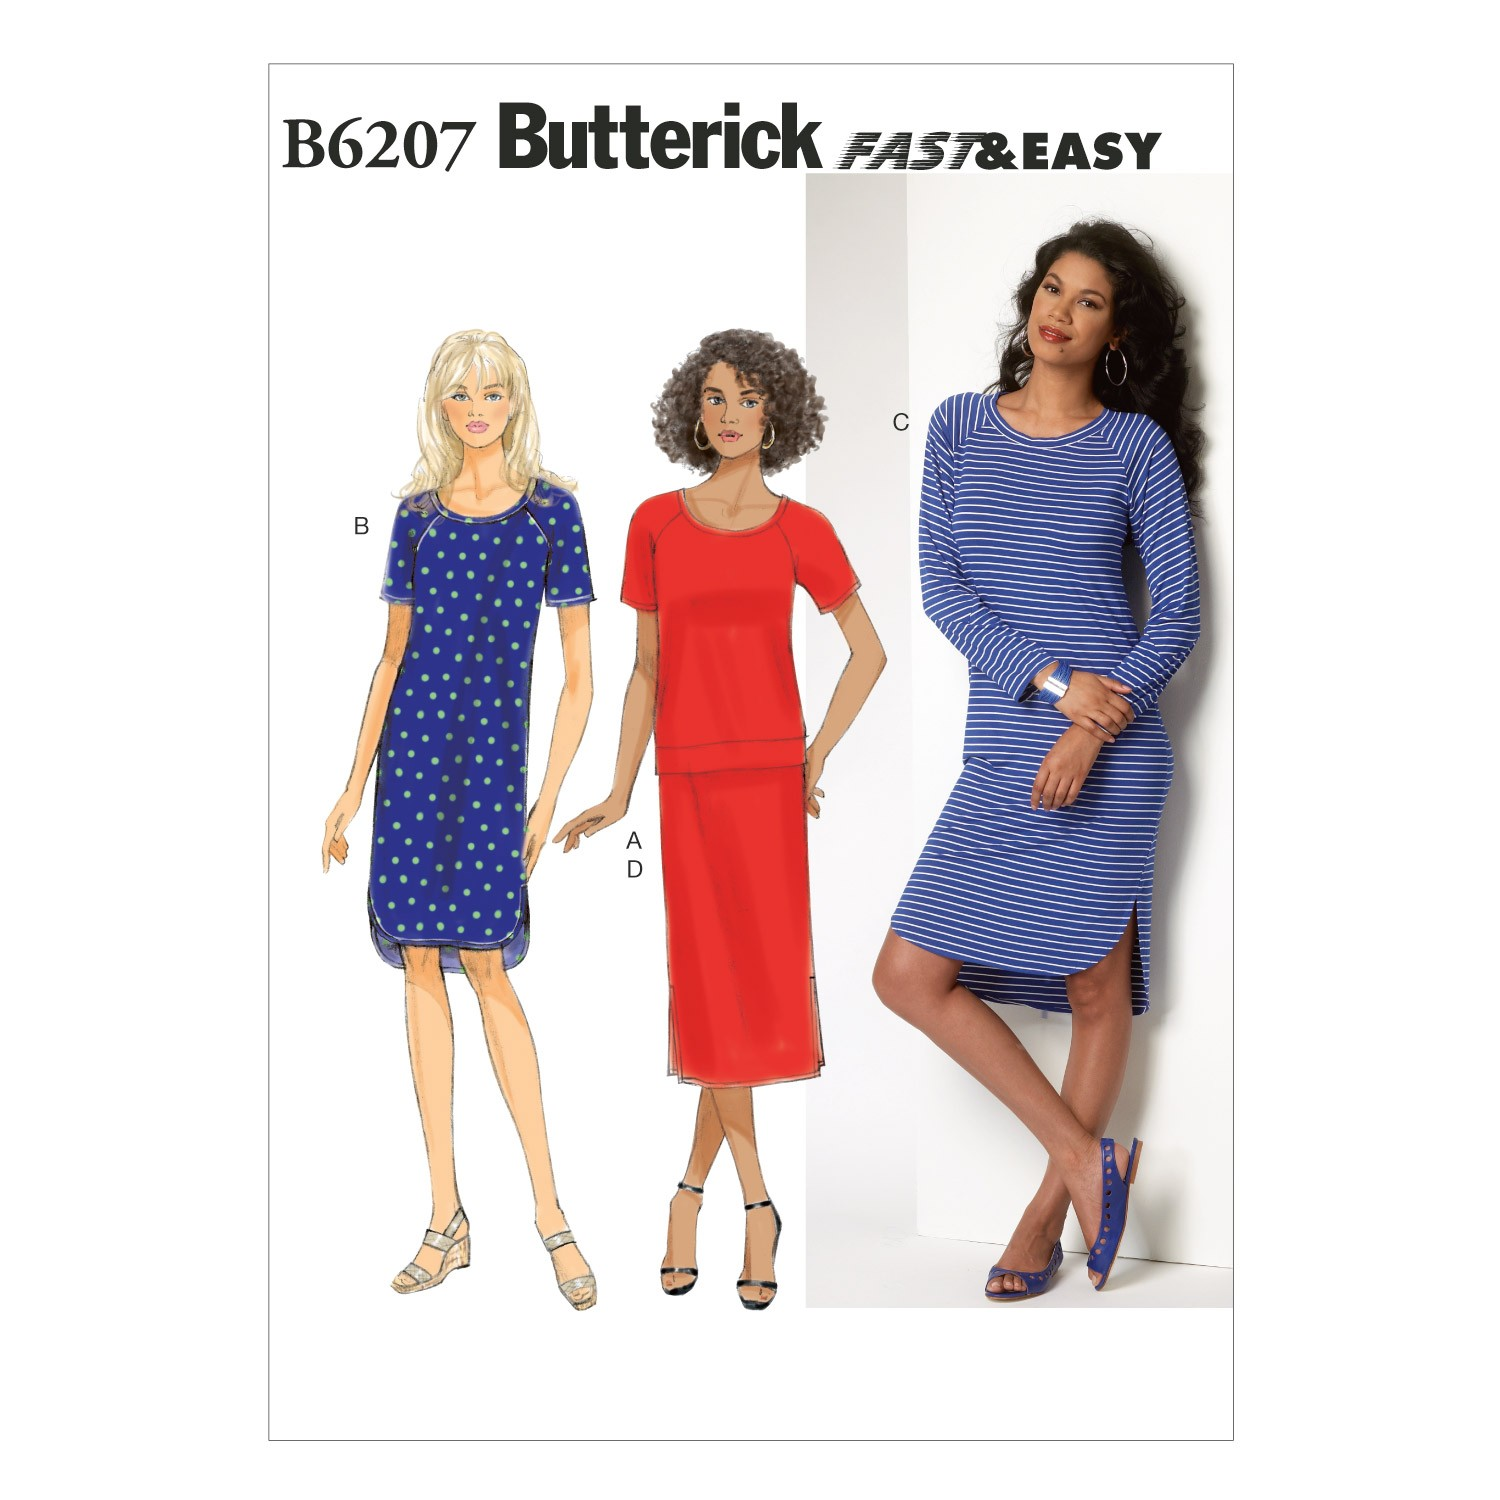 Butterick Sewing Pattern 6207 Misses' Top Dress & Skirt